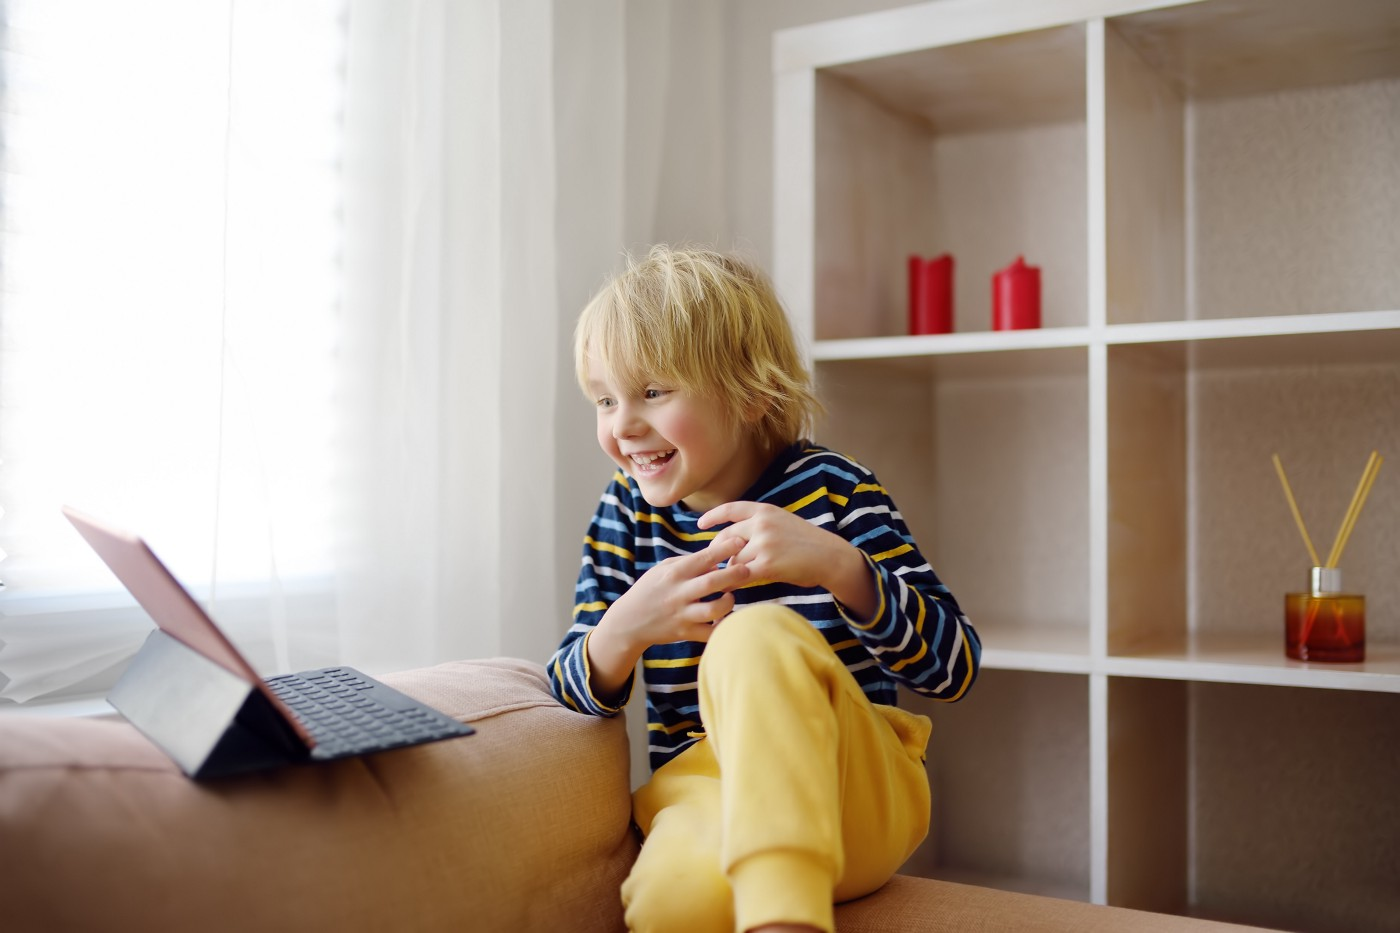 Little boy looking at laptop and smiling